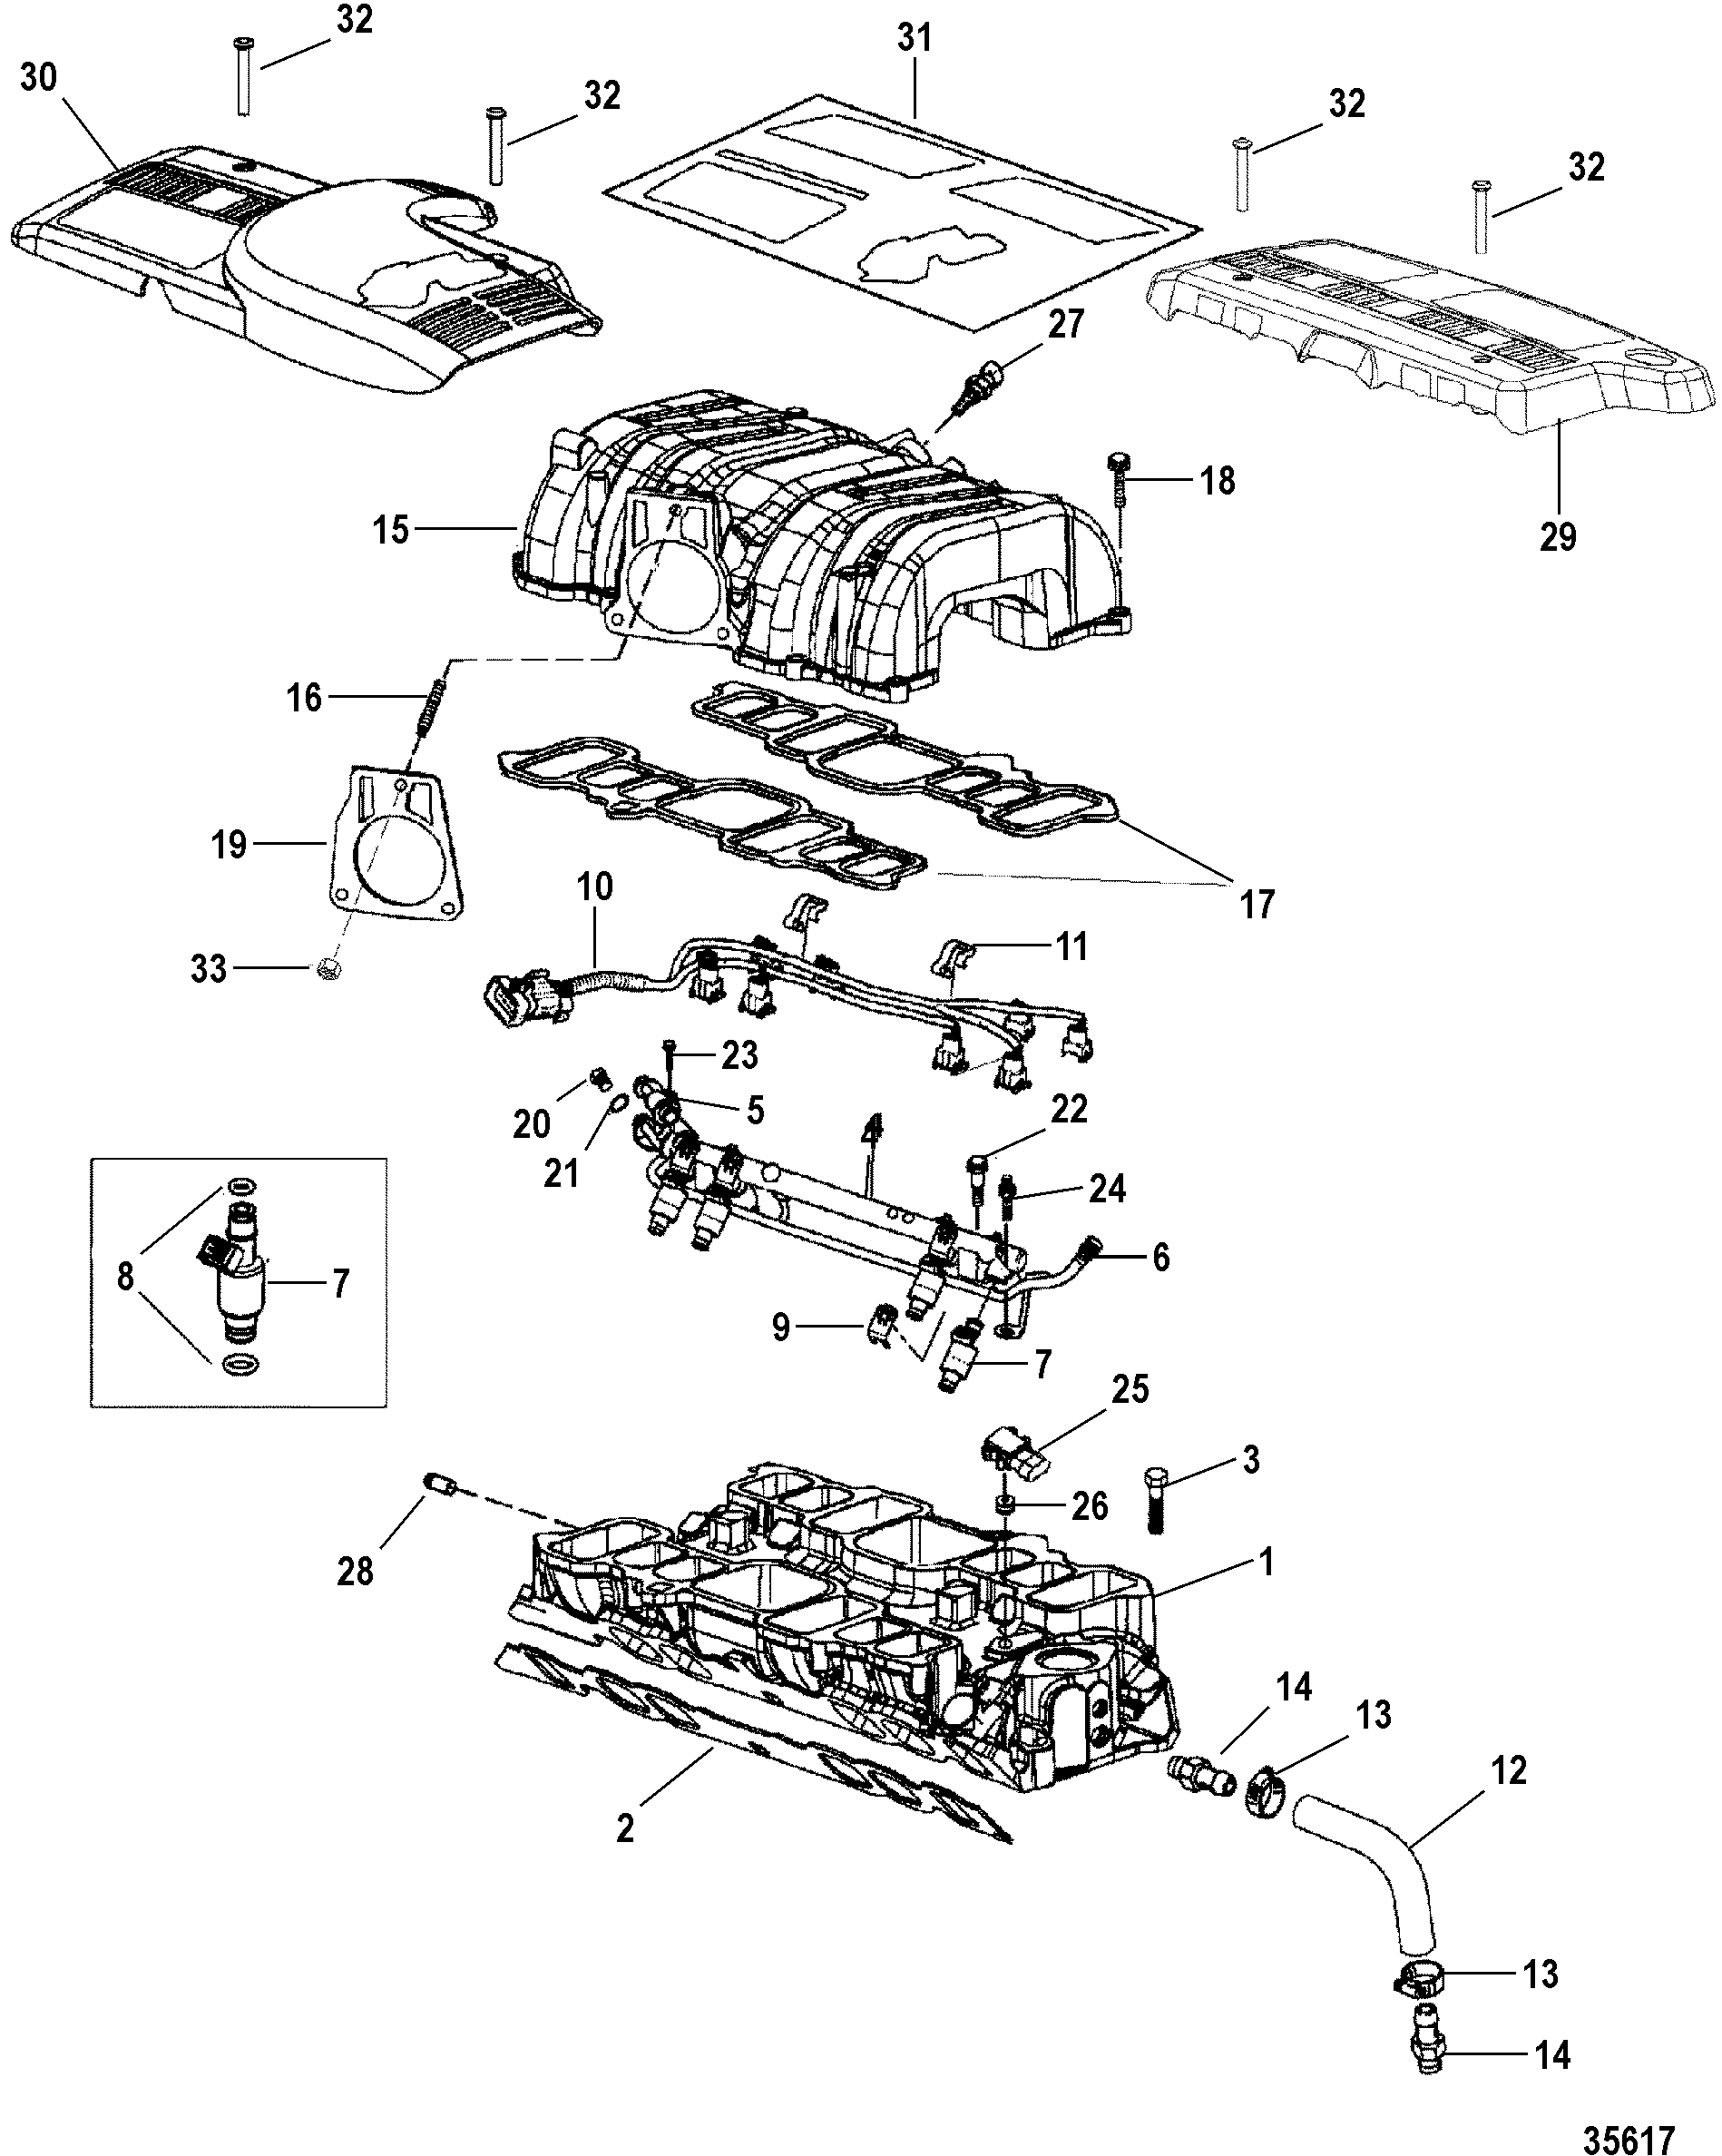 gm 350 intake manifold to engine diagram wiring library Motor Truck 7 4l mpi bravo gen 6 gm 454 v 8 1998 2000